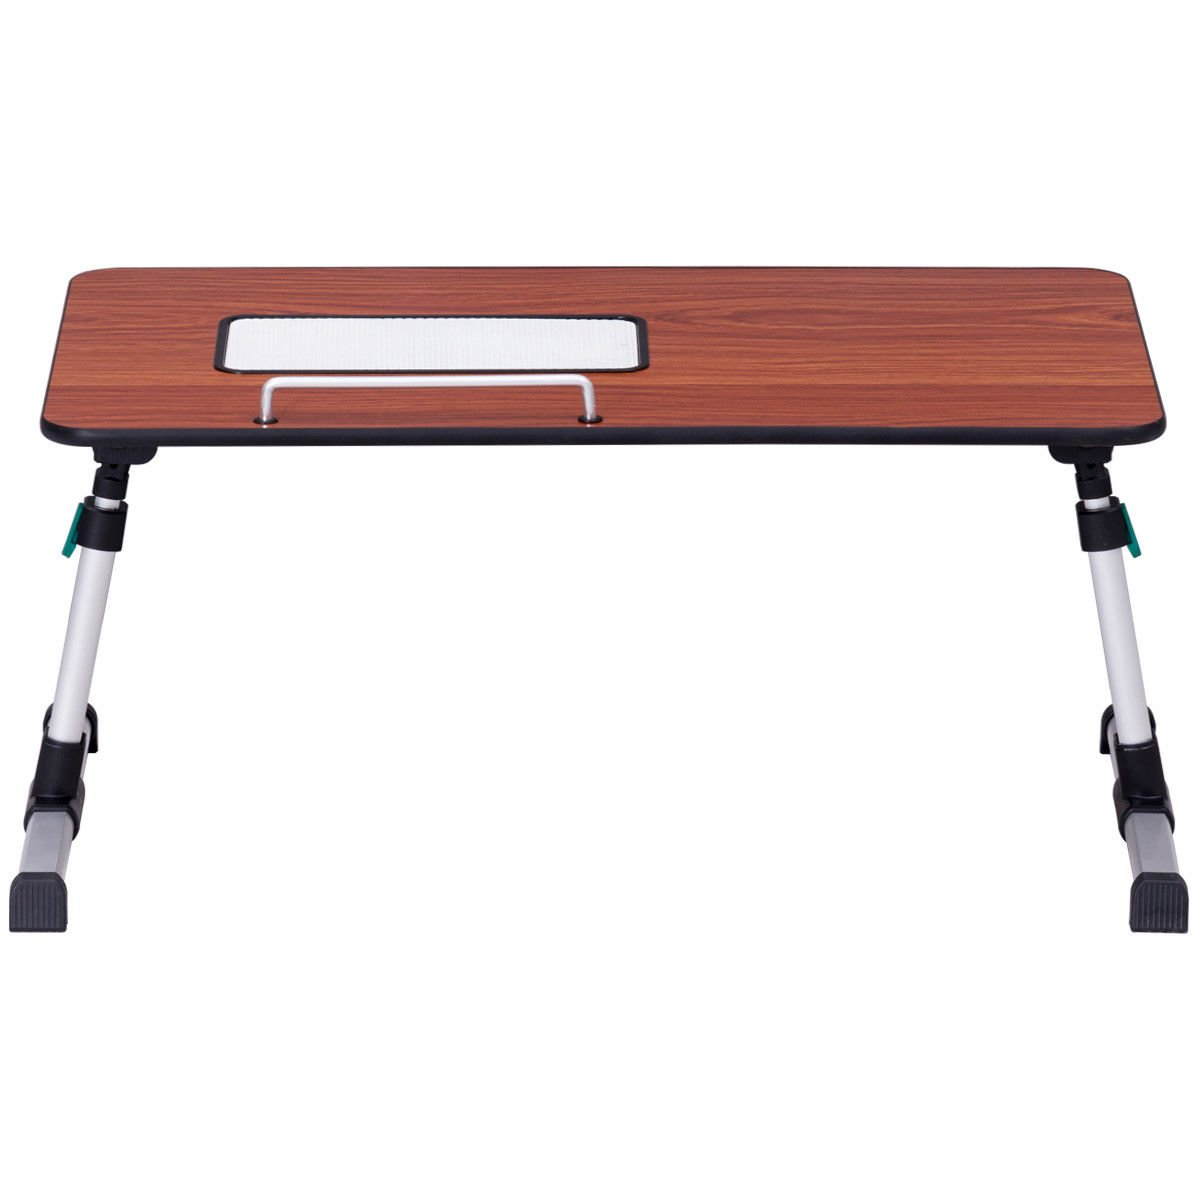 KCHEX>Portable Height Adjustable Laptop Bed Tray Table Standing Desk w Cooling Fan>Our Laptop Desk is Made of MDF and is Environmental Friendly. with Our Laptop Desk, You can conveniently